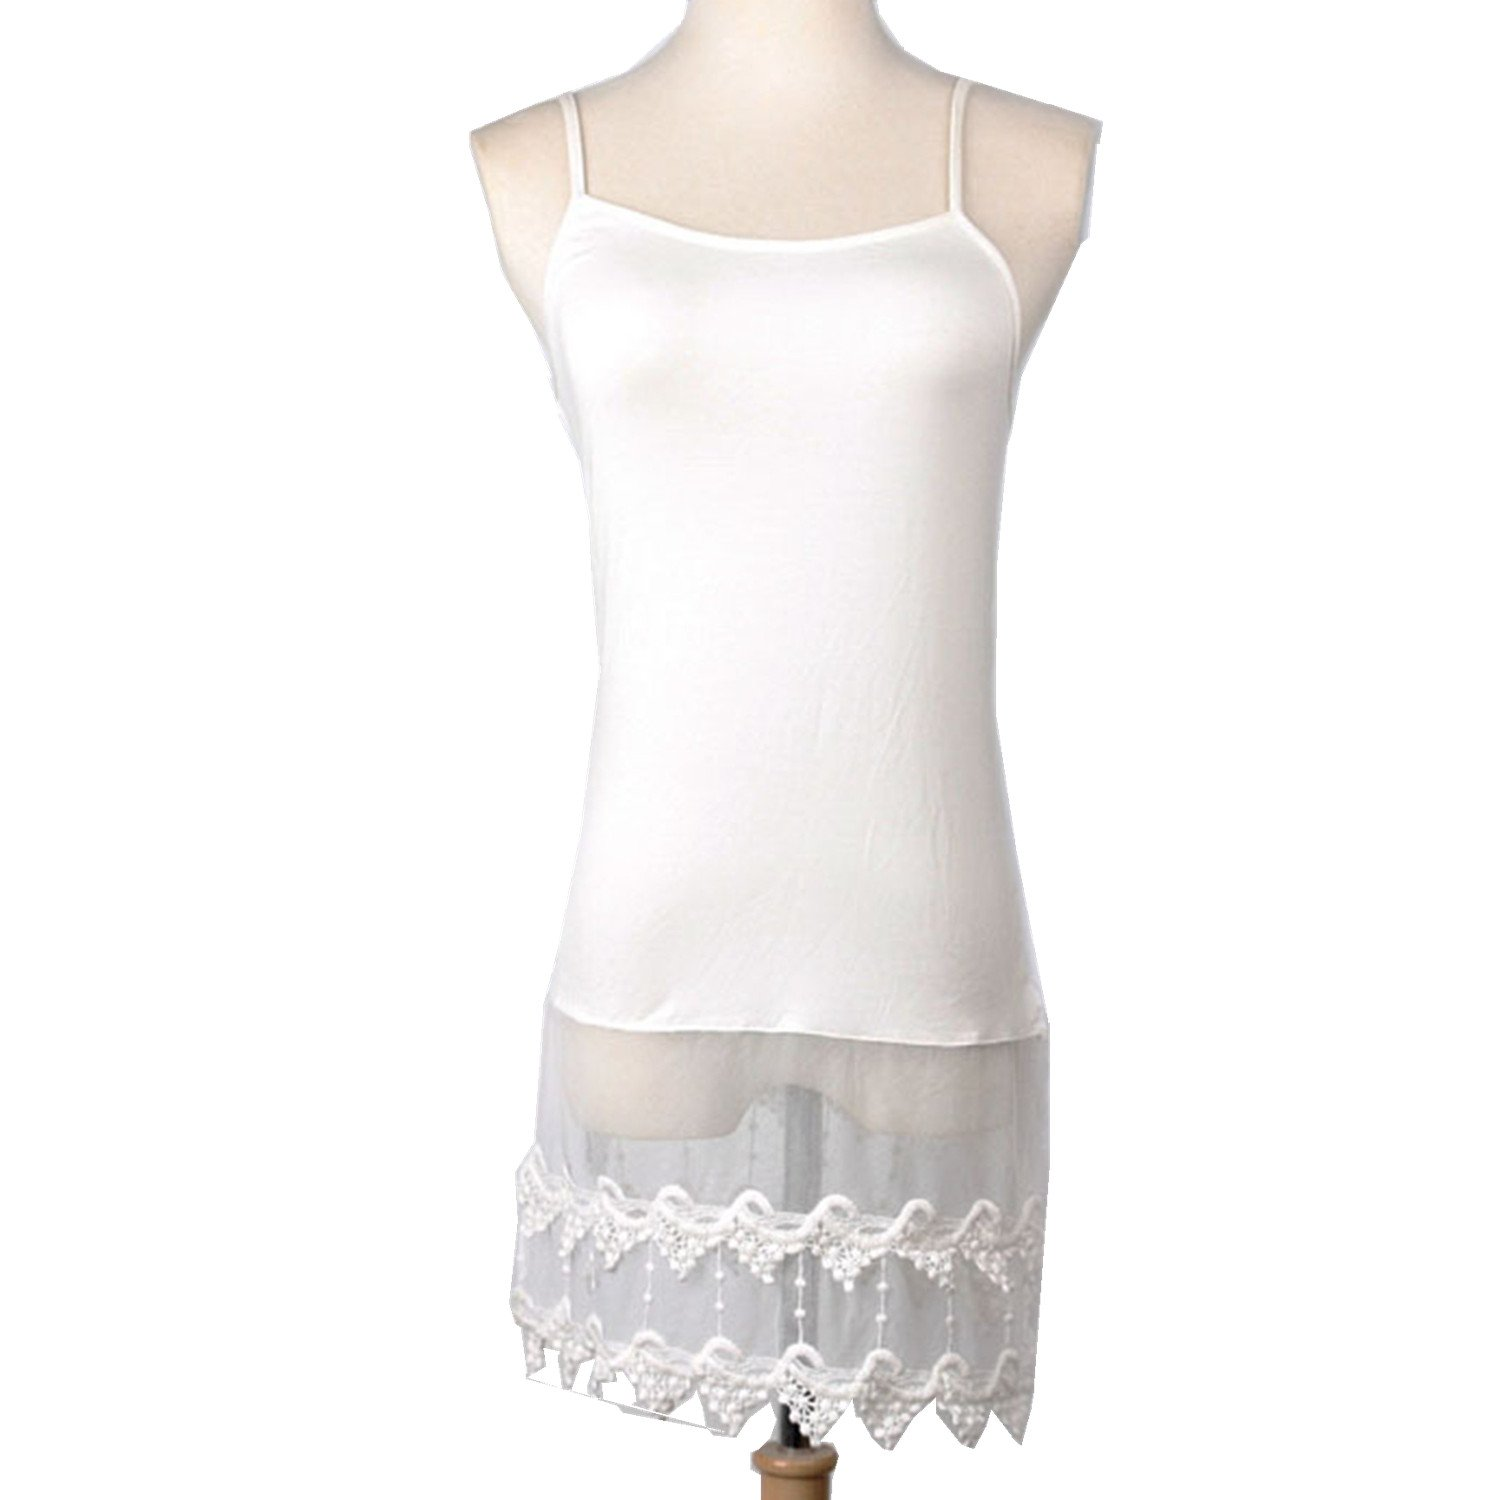 xhorizon SR1 Hi-Lo Chiffon Duffle Style Extender Lace Trimmed Camisole Top